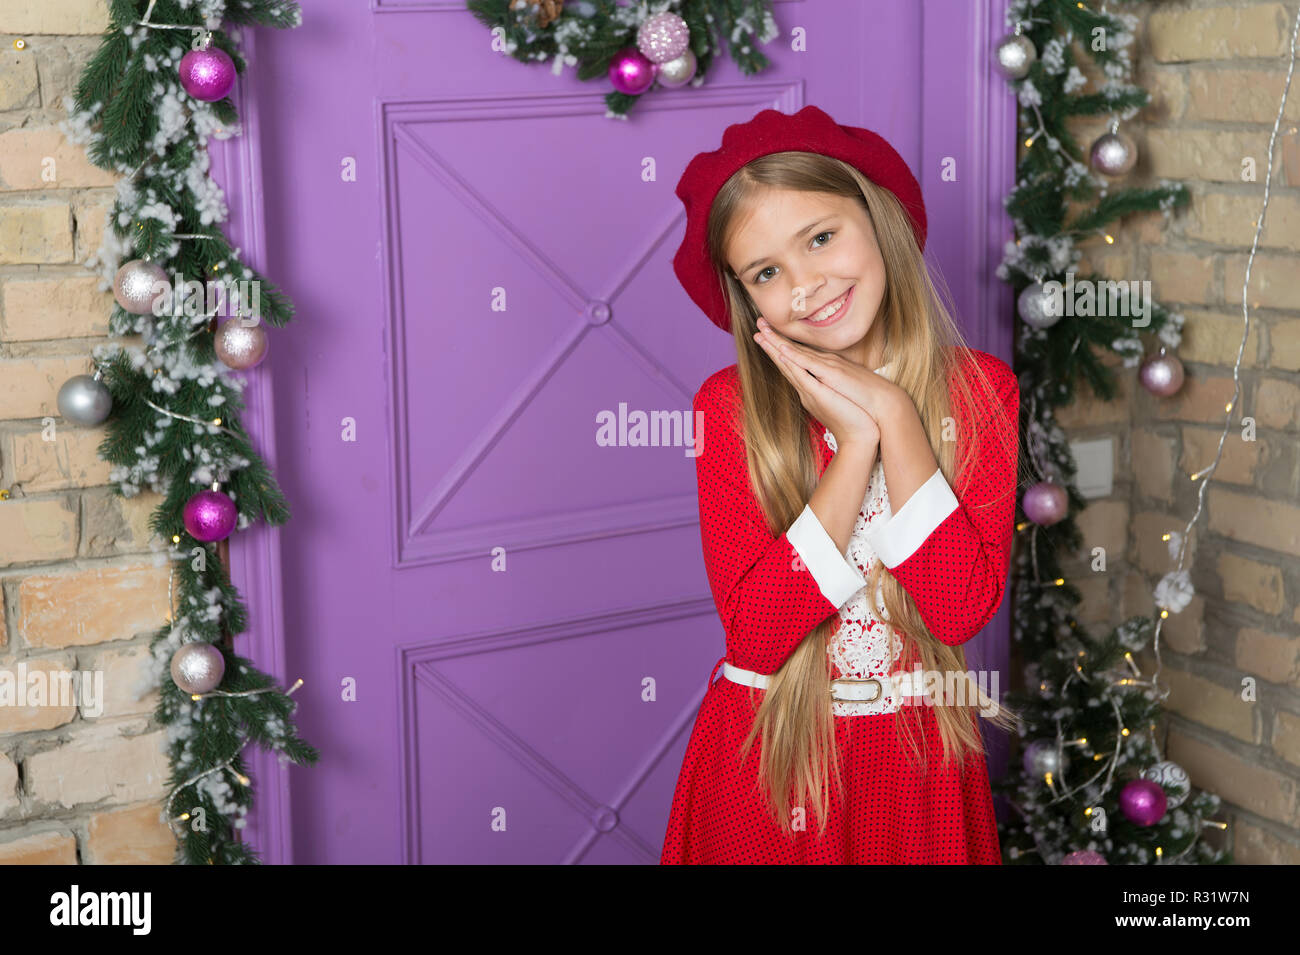 Christmas Wish Stockfotos & Christmas Wish Bilder - Alamy